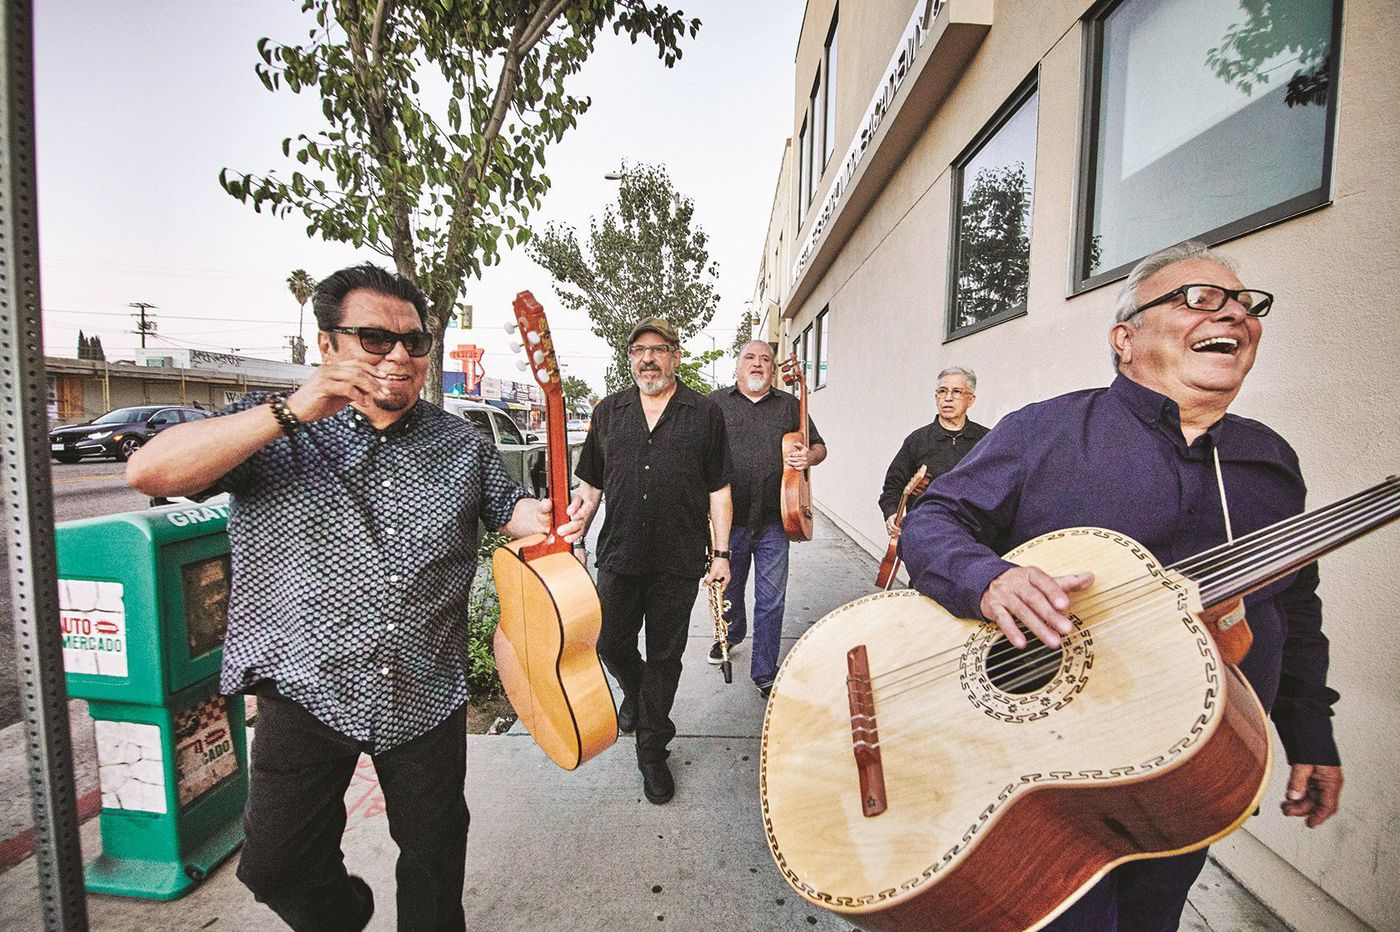 'Llegó Navidad': Christmas is near, and Los Lobos is coming to town